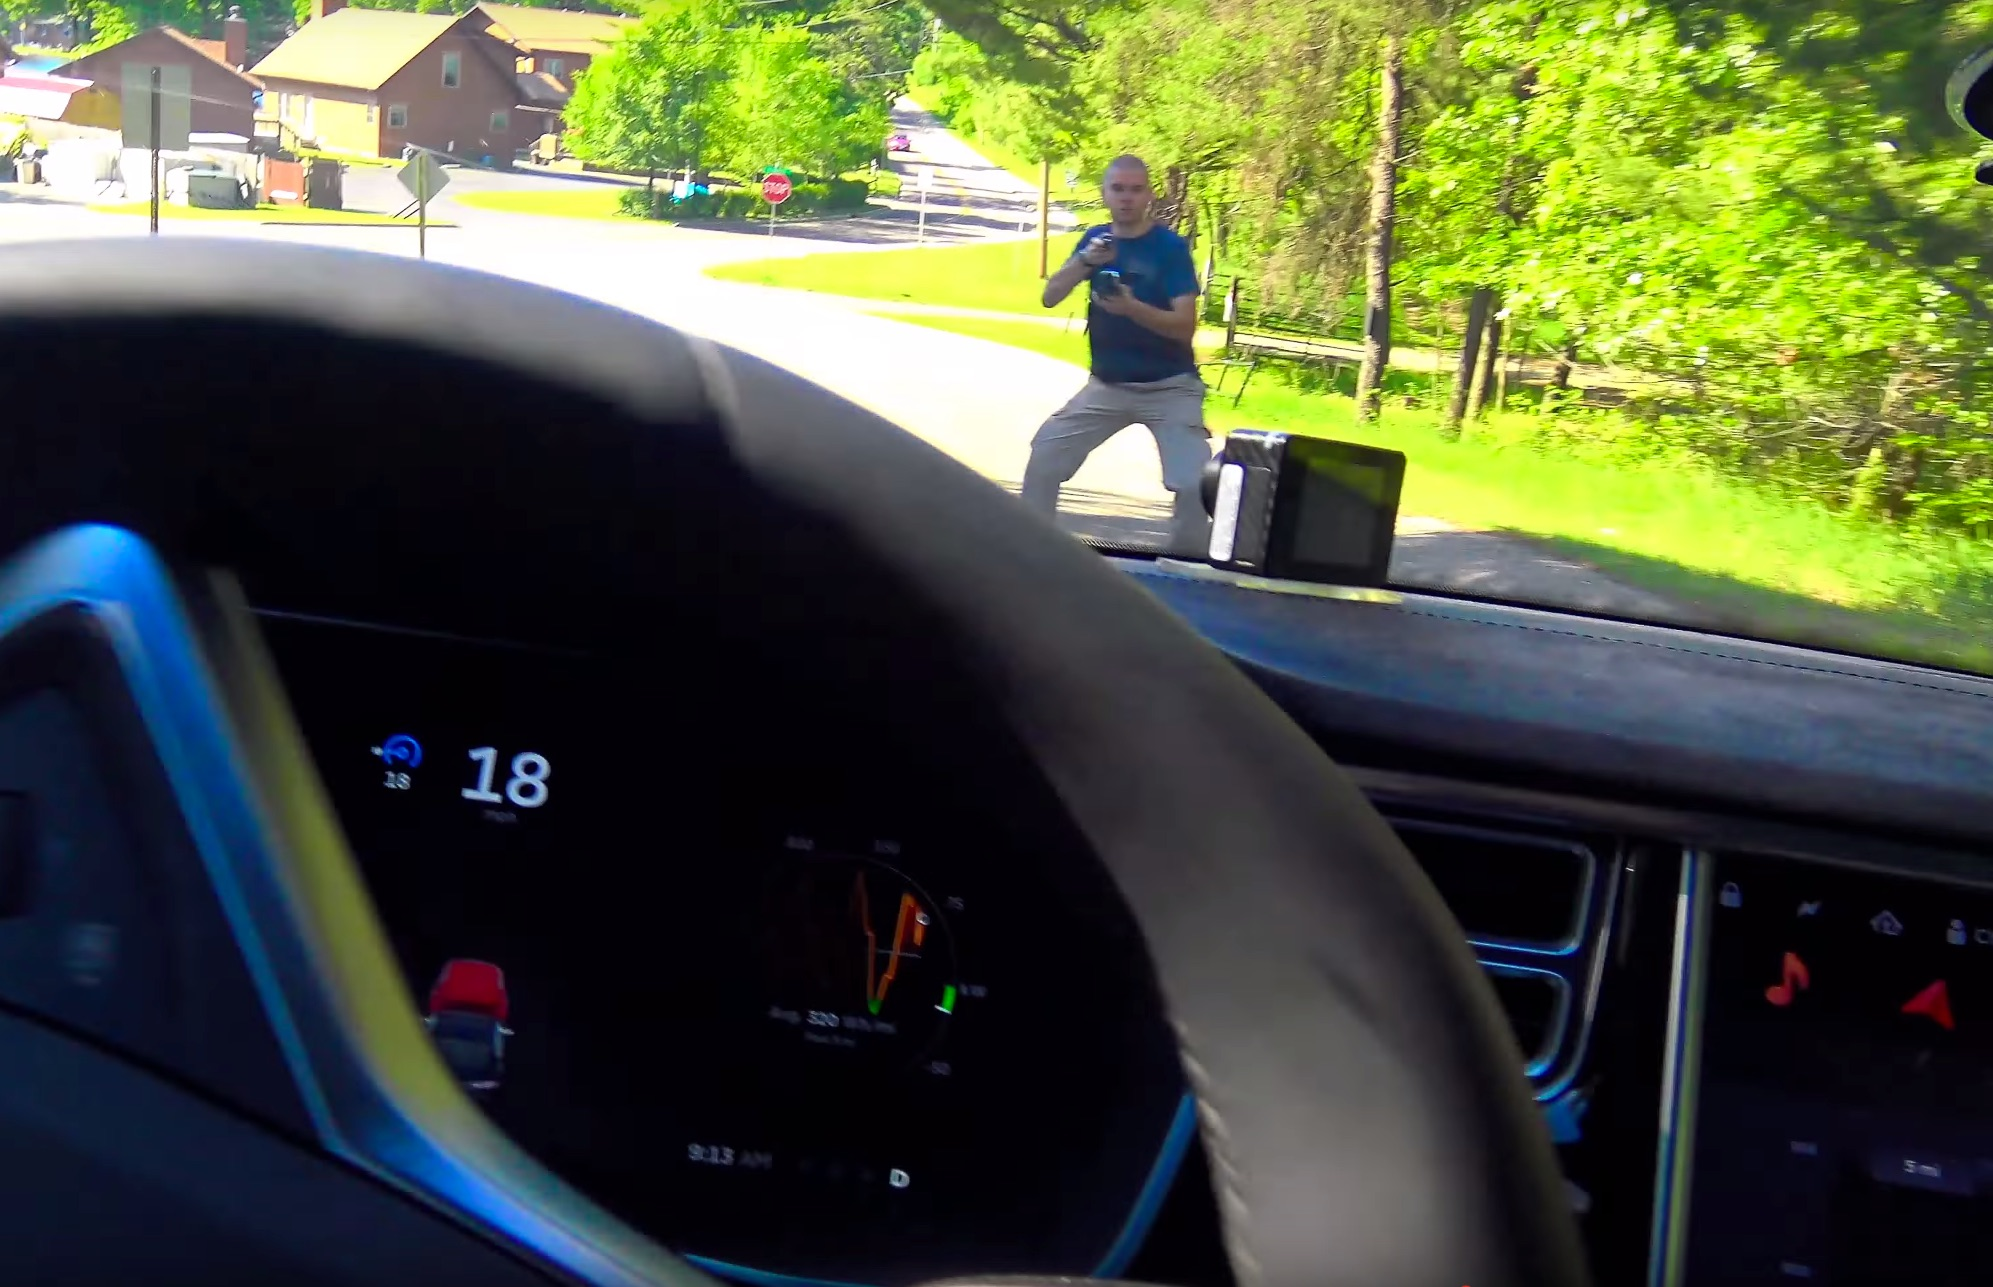 Watch Tesla Fan Puts Himself In Front Of A Moving Model S To Test Autopilot Collision Avoidance Capabilities